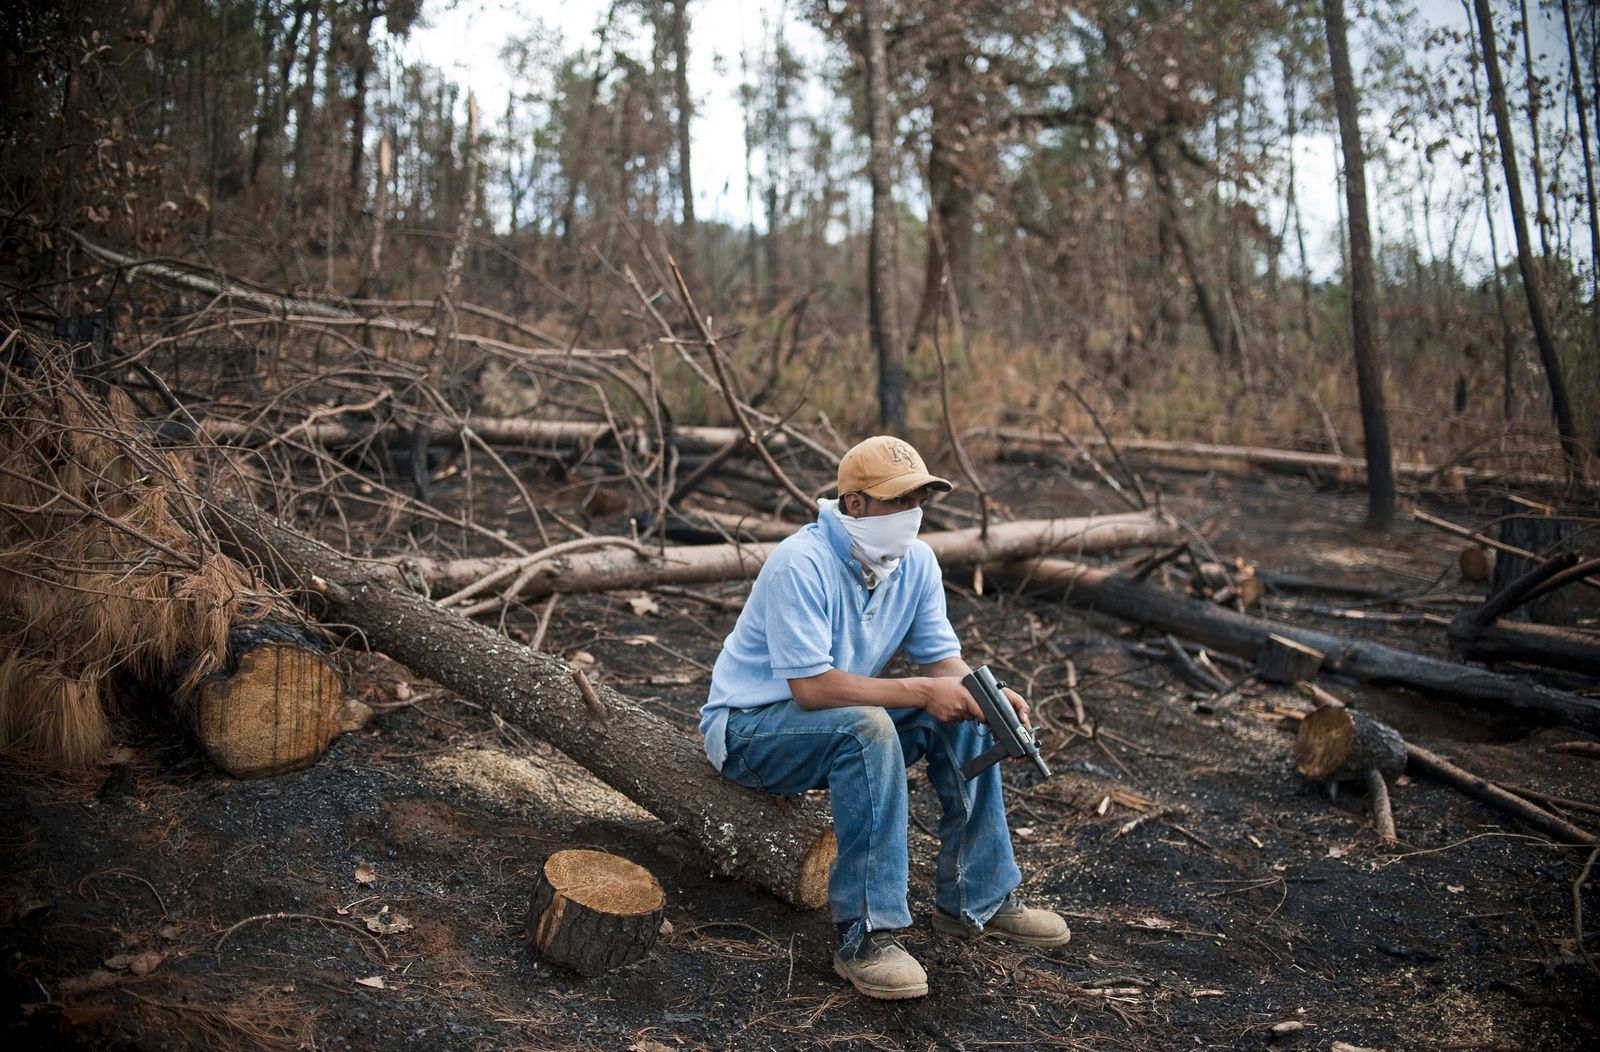 MEXICO-ILLEGAL-LOGGERS-VIOLENCE